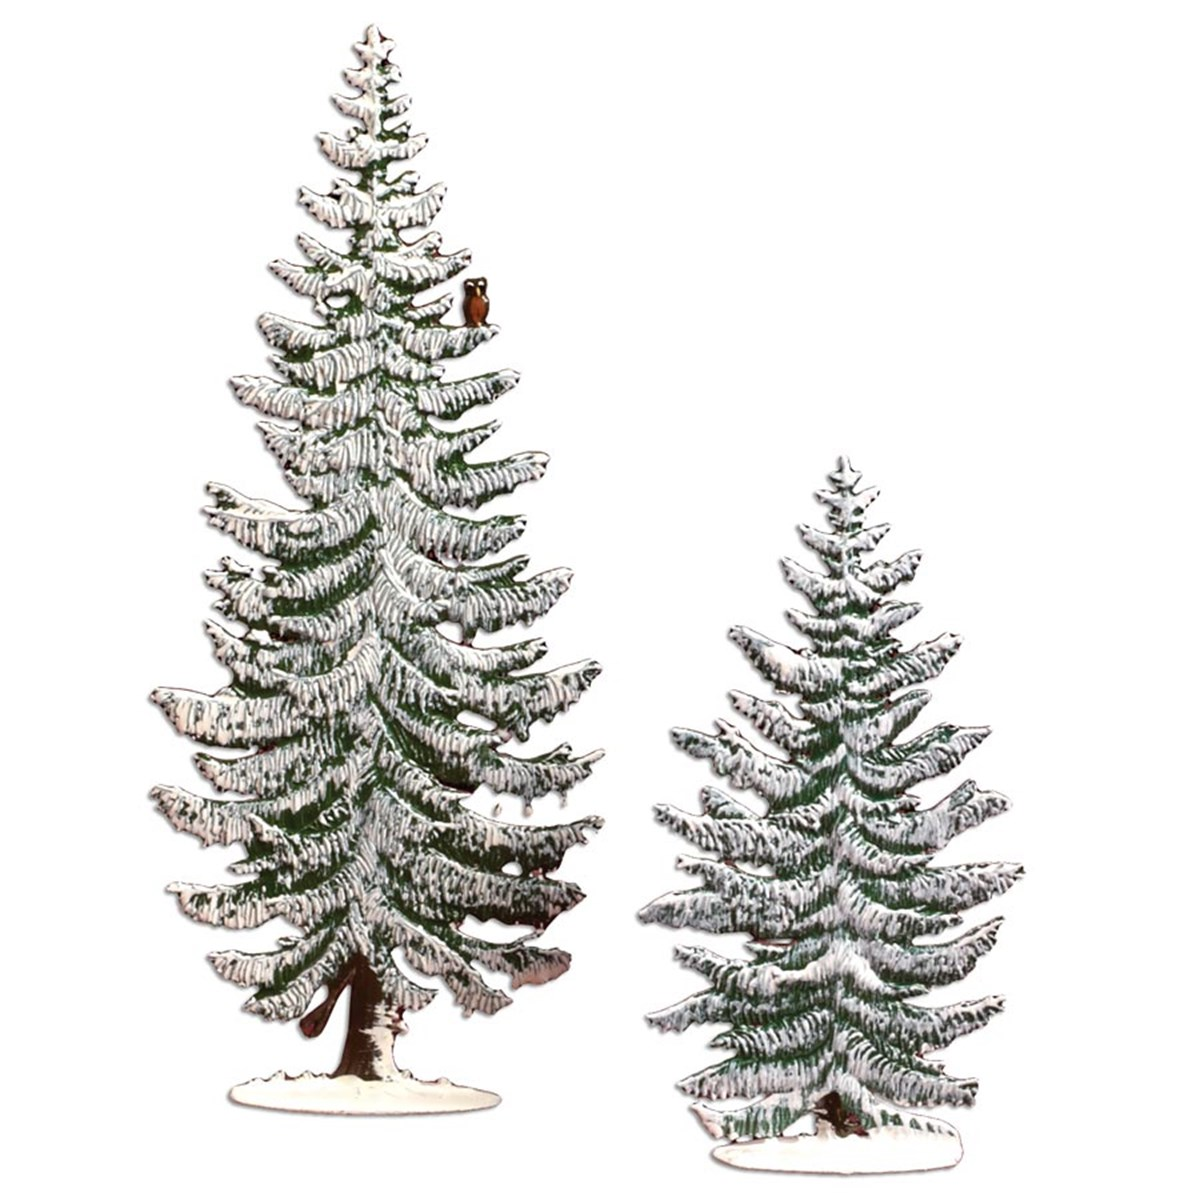 Scully & Scully Slender Winter Pine Trees with Owl and Bird